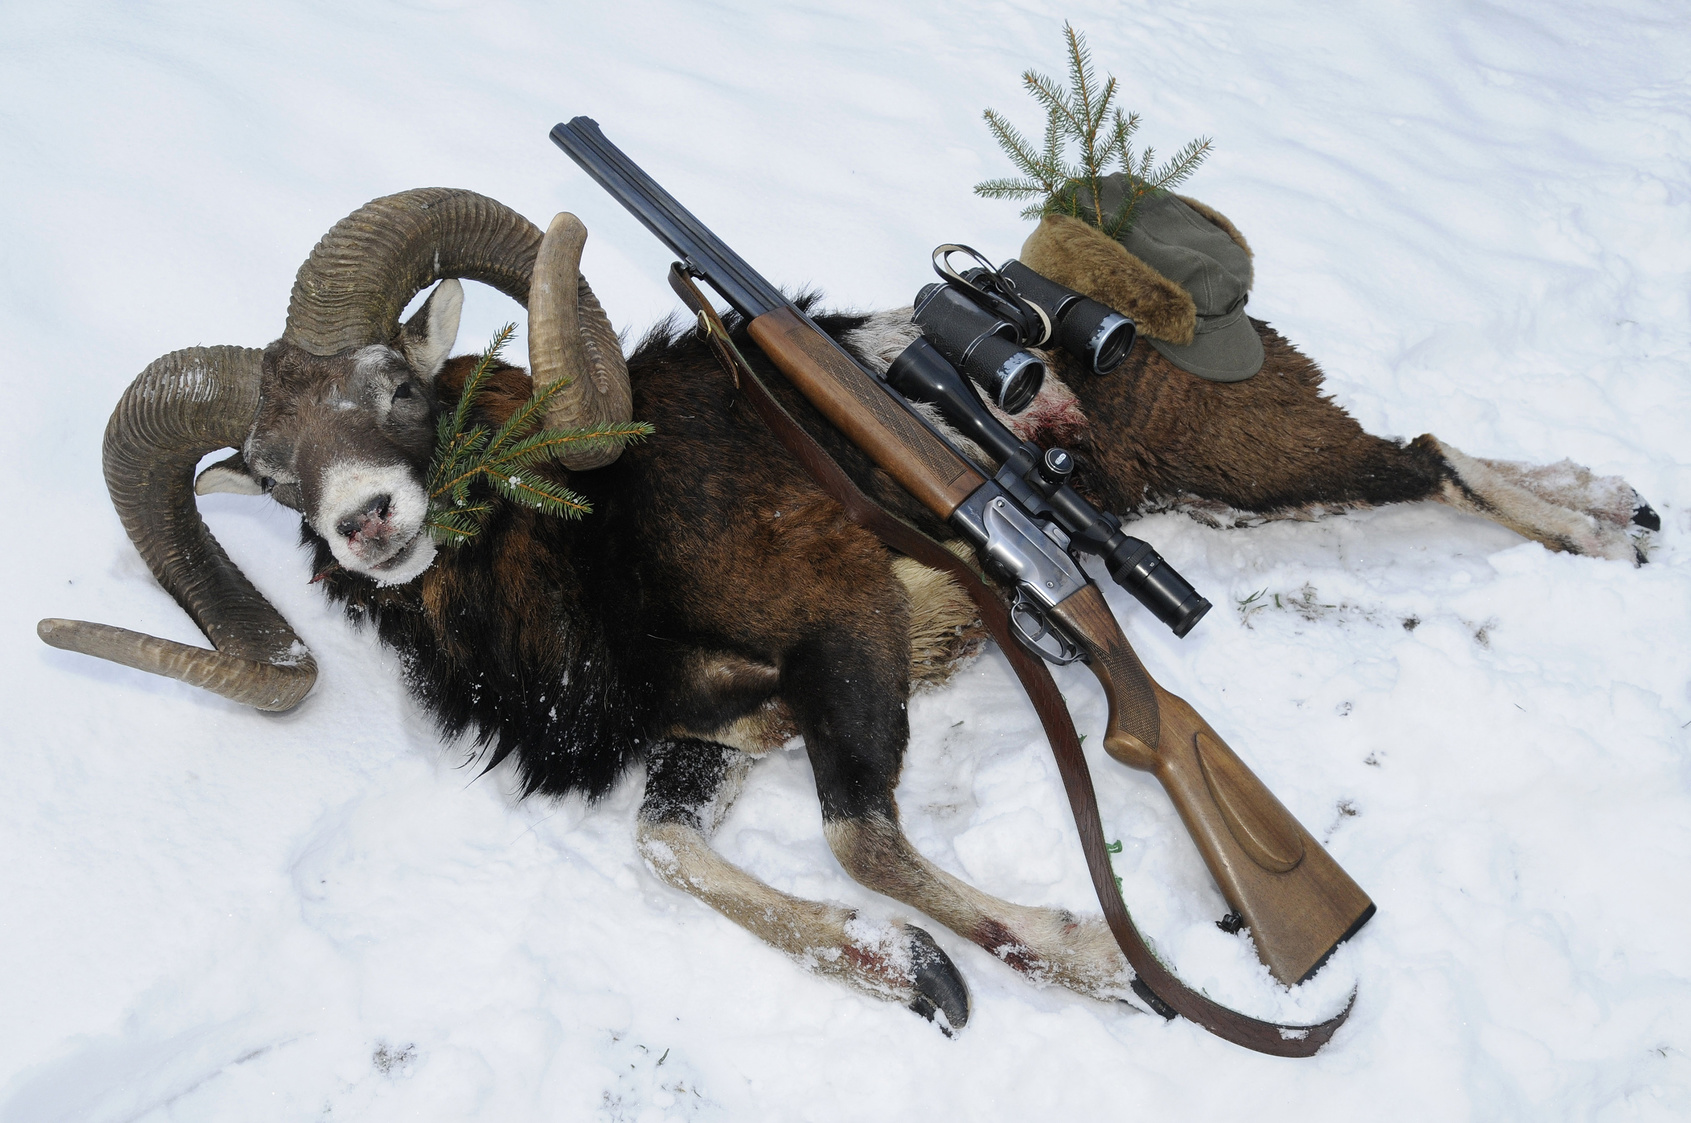 Mouflon hunting trophy with gun on snow